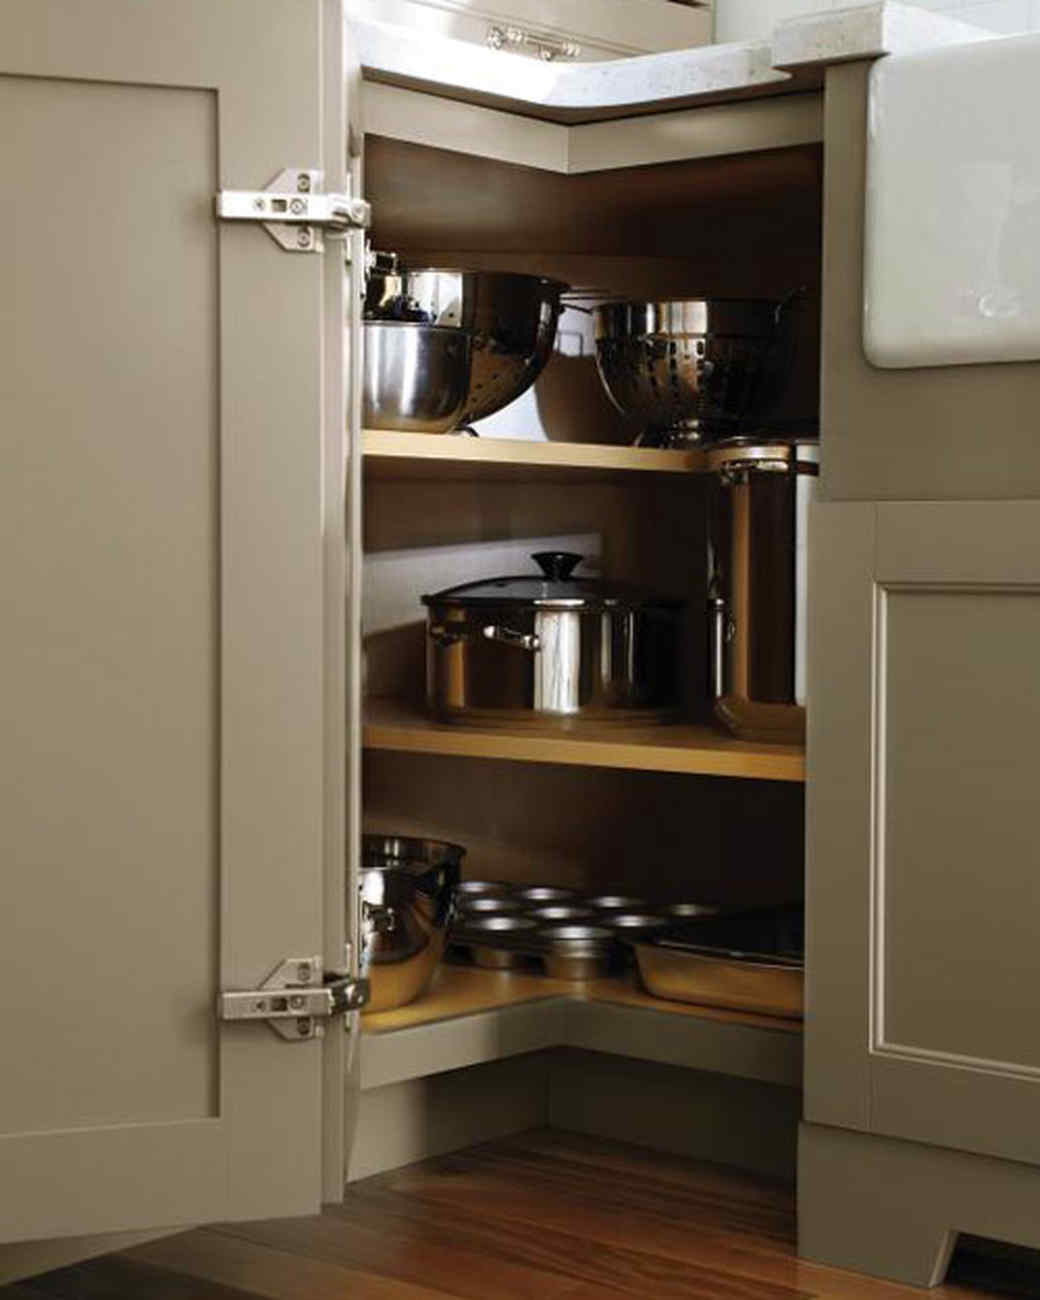 10 Corner Kitchen Cabinet Ideas How To Use Kitchen Corners Apartment Therapy